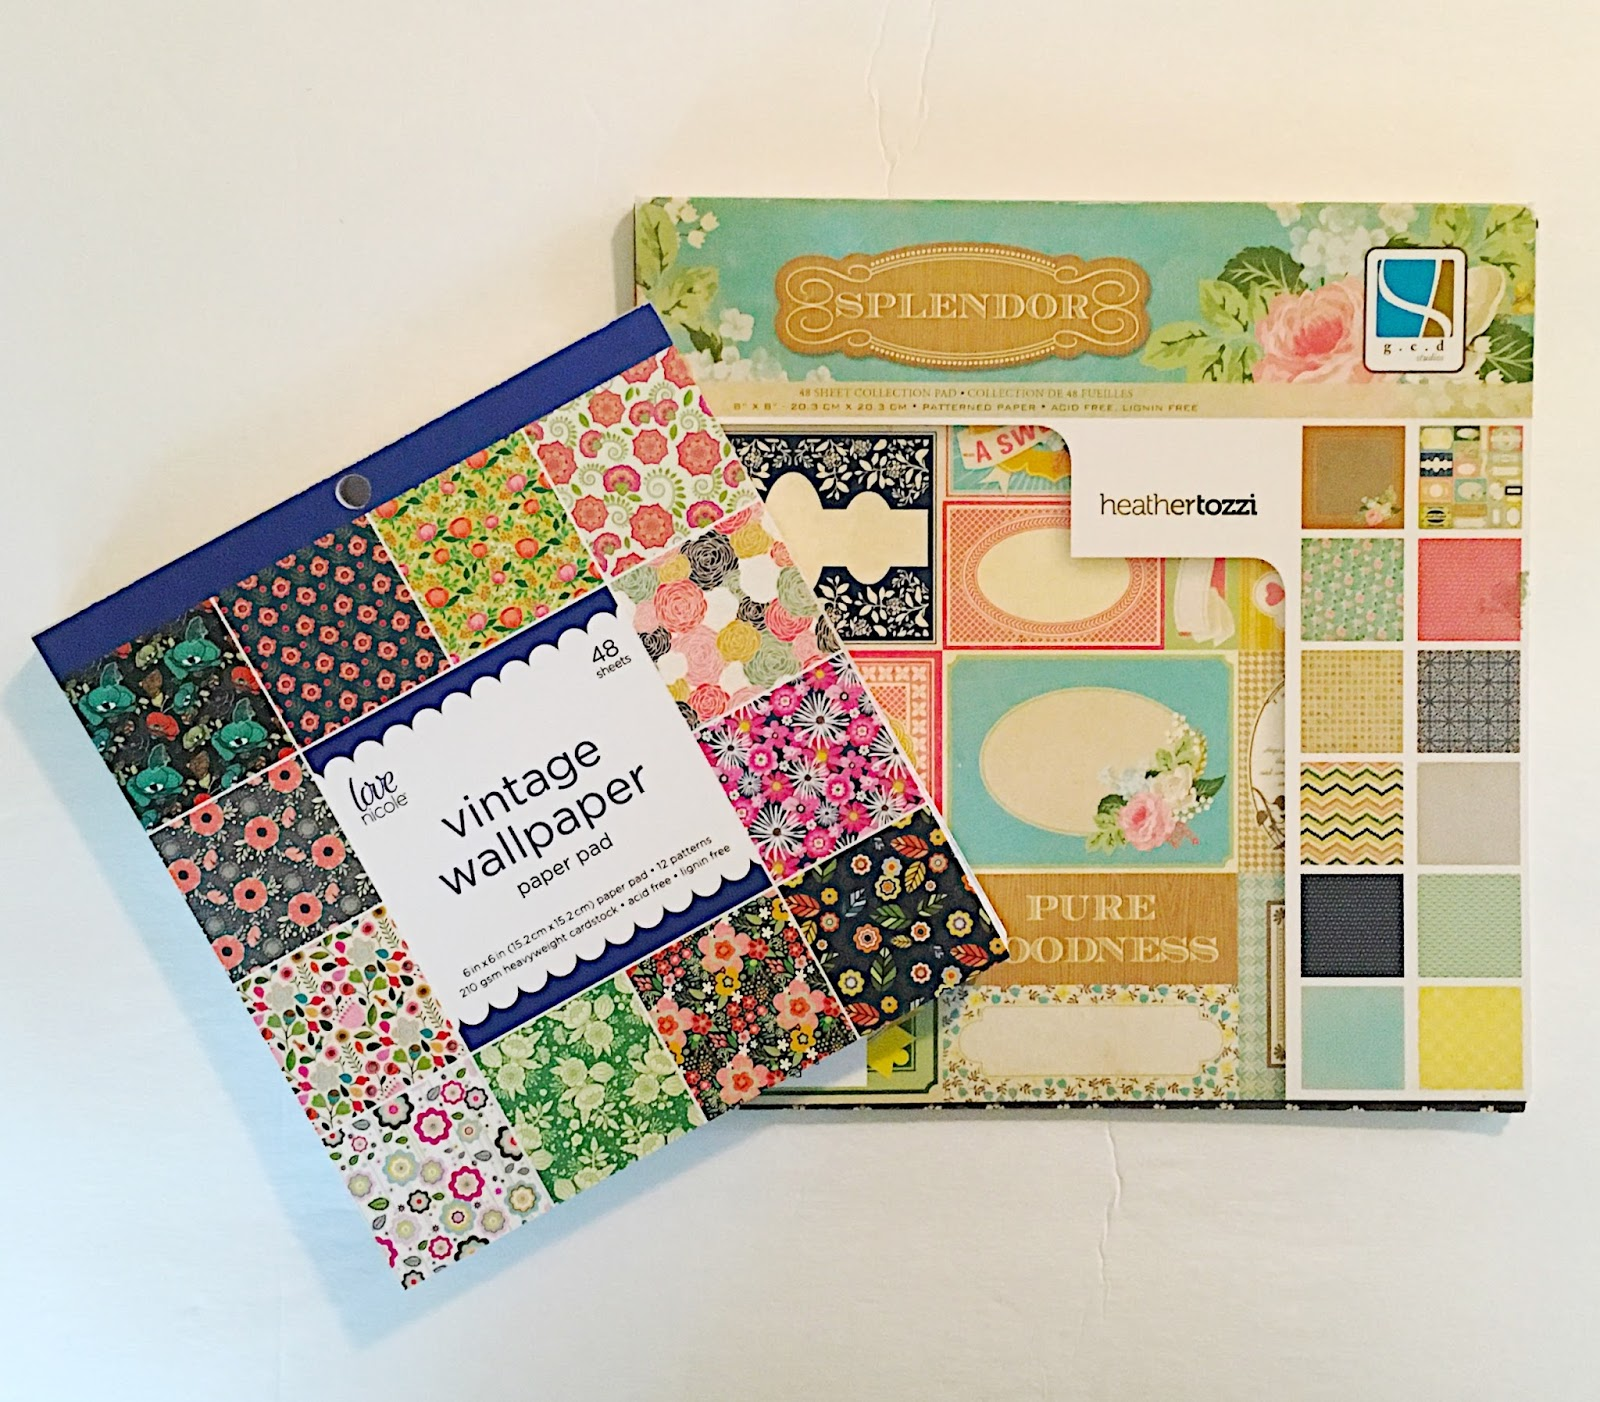 Scrapbook paper envelope - I Used A Roll Ofkraft Paper Which I Purchased At Walmart I Like To Line My Envelopes I Used A Pad Of Scrapbooking Paper That Was 8x8 But The 6x6 Would